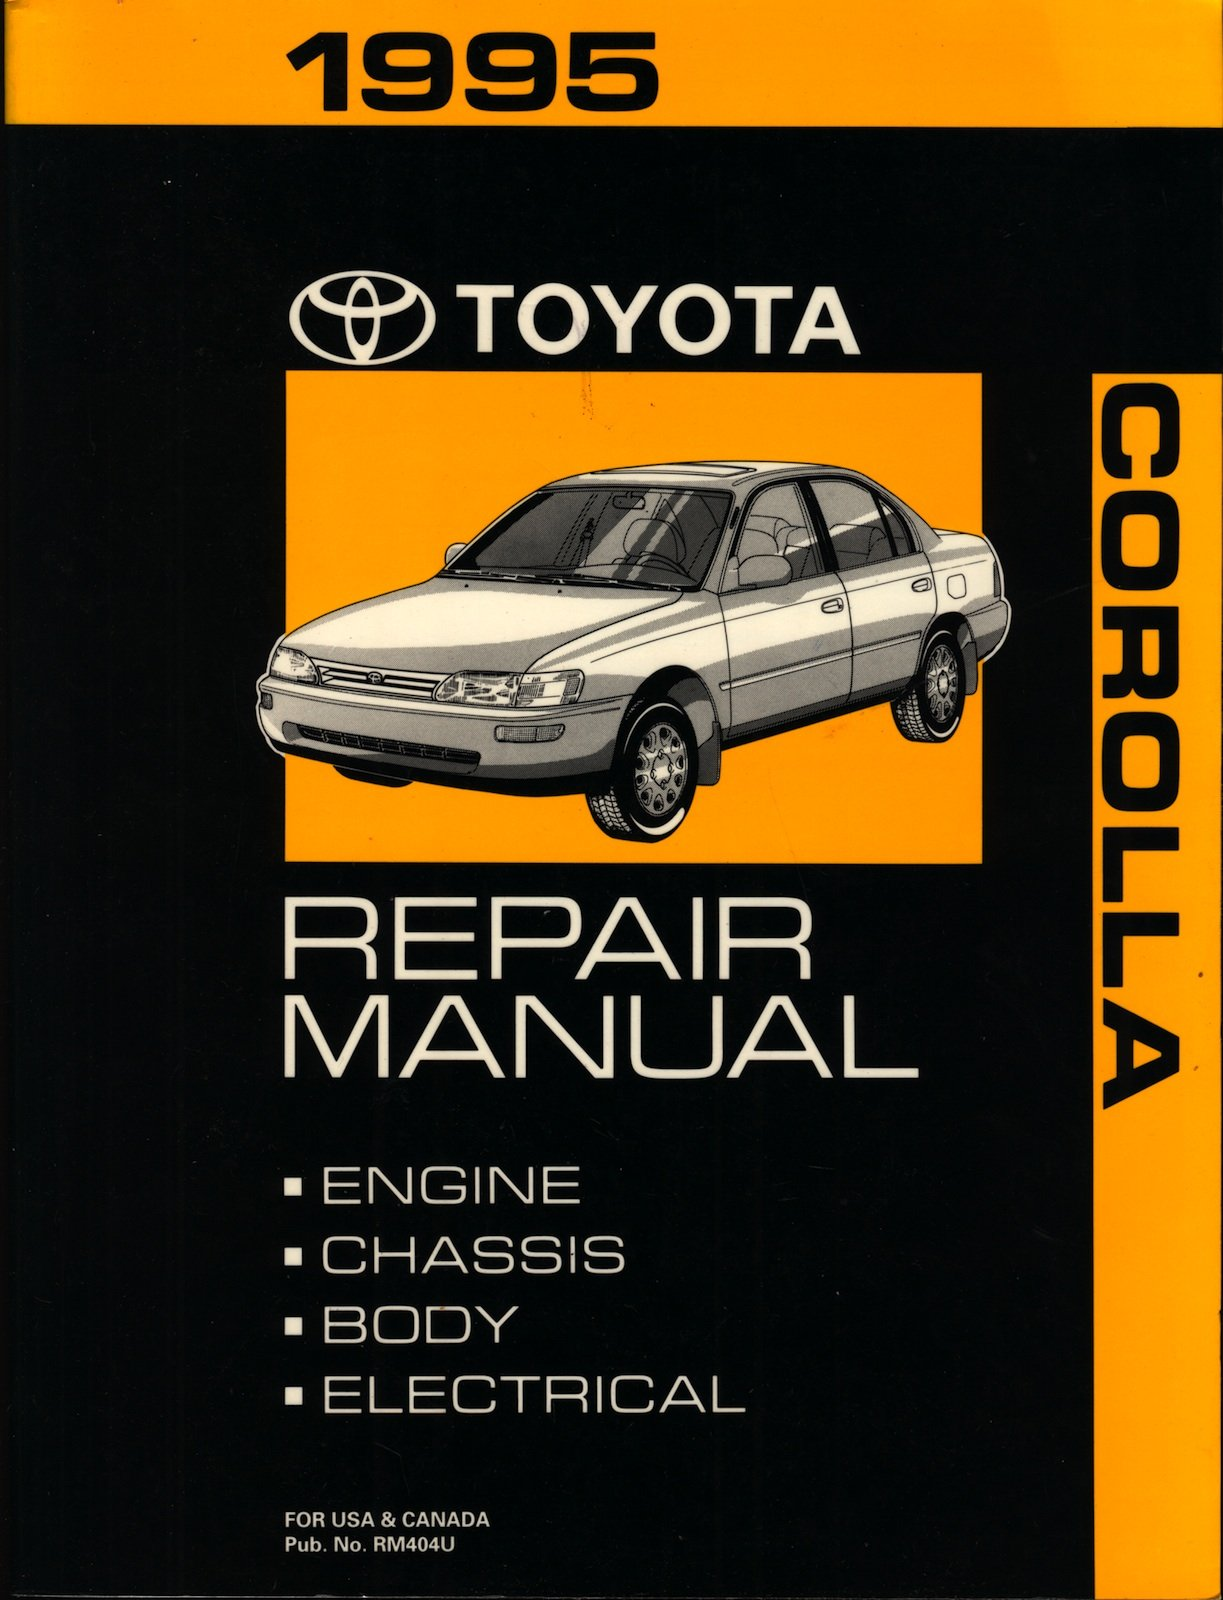 corolla starter wiring diagram wiring library Car Starter Wiring Diagram 1995 toyota corolla repair manual toyota amazon com books 2006 toyota corolla wiring diagram 1994 toyota